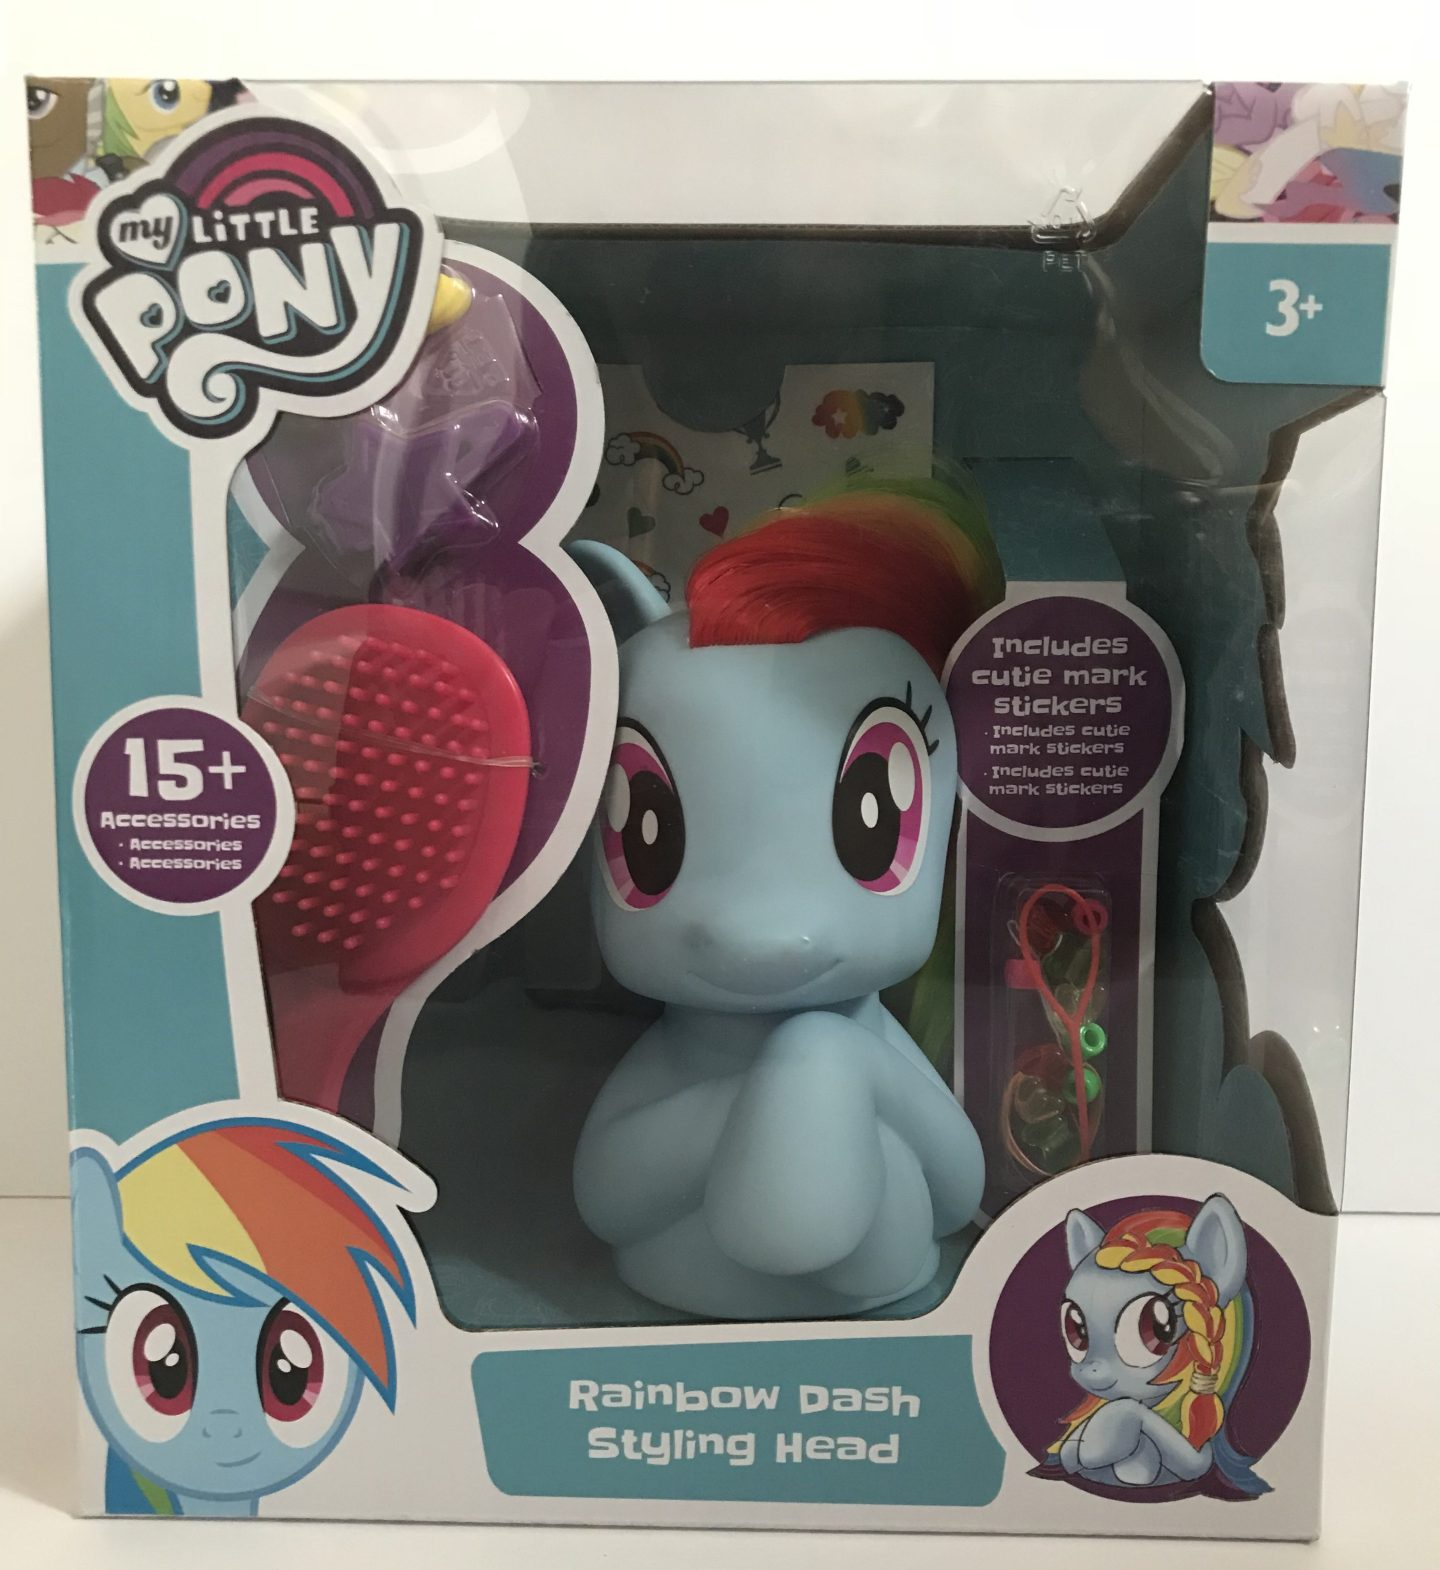 Perfecting The Perfect Pony Tail With The My Little Pony Rainbow Dash Styling Head